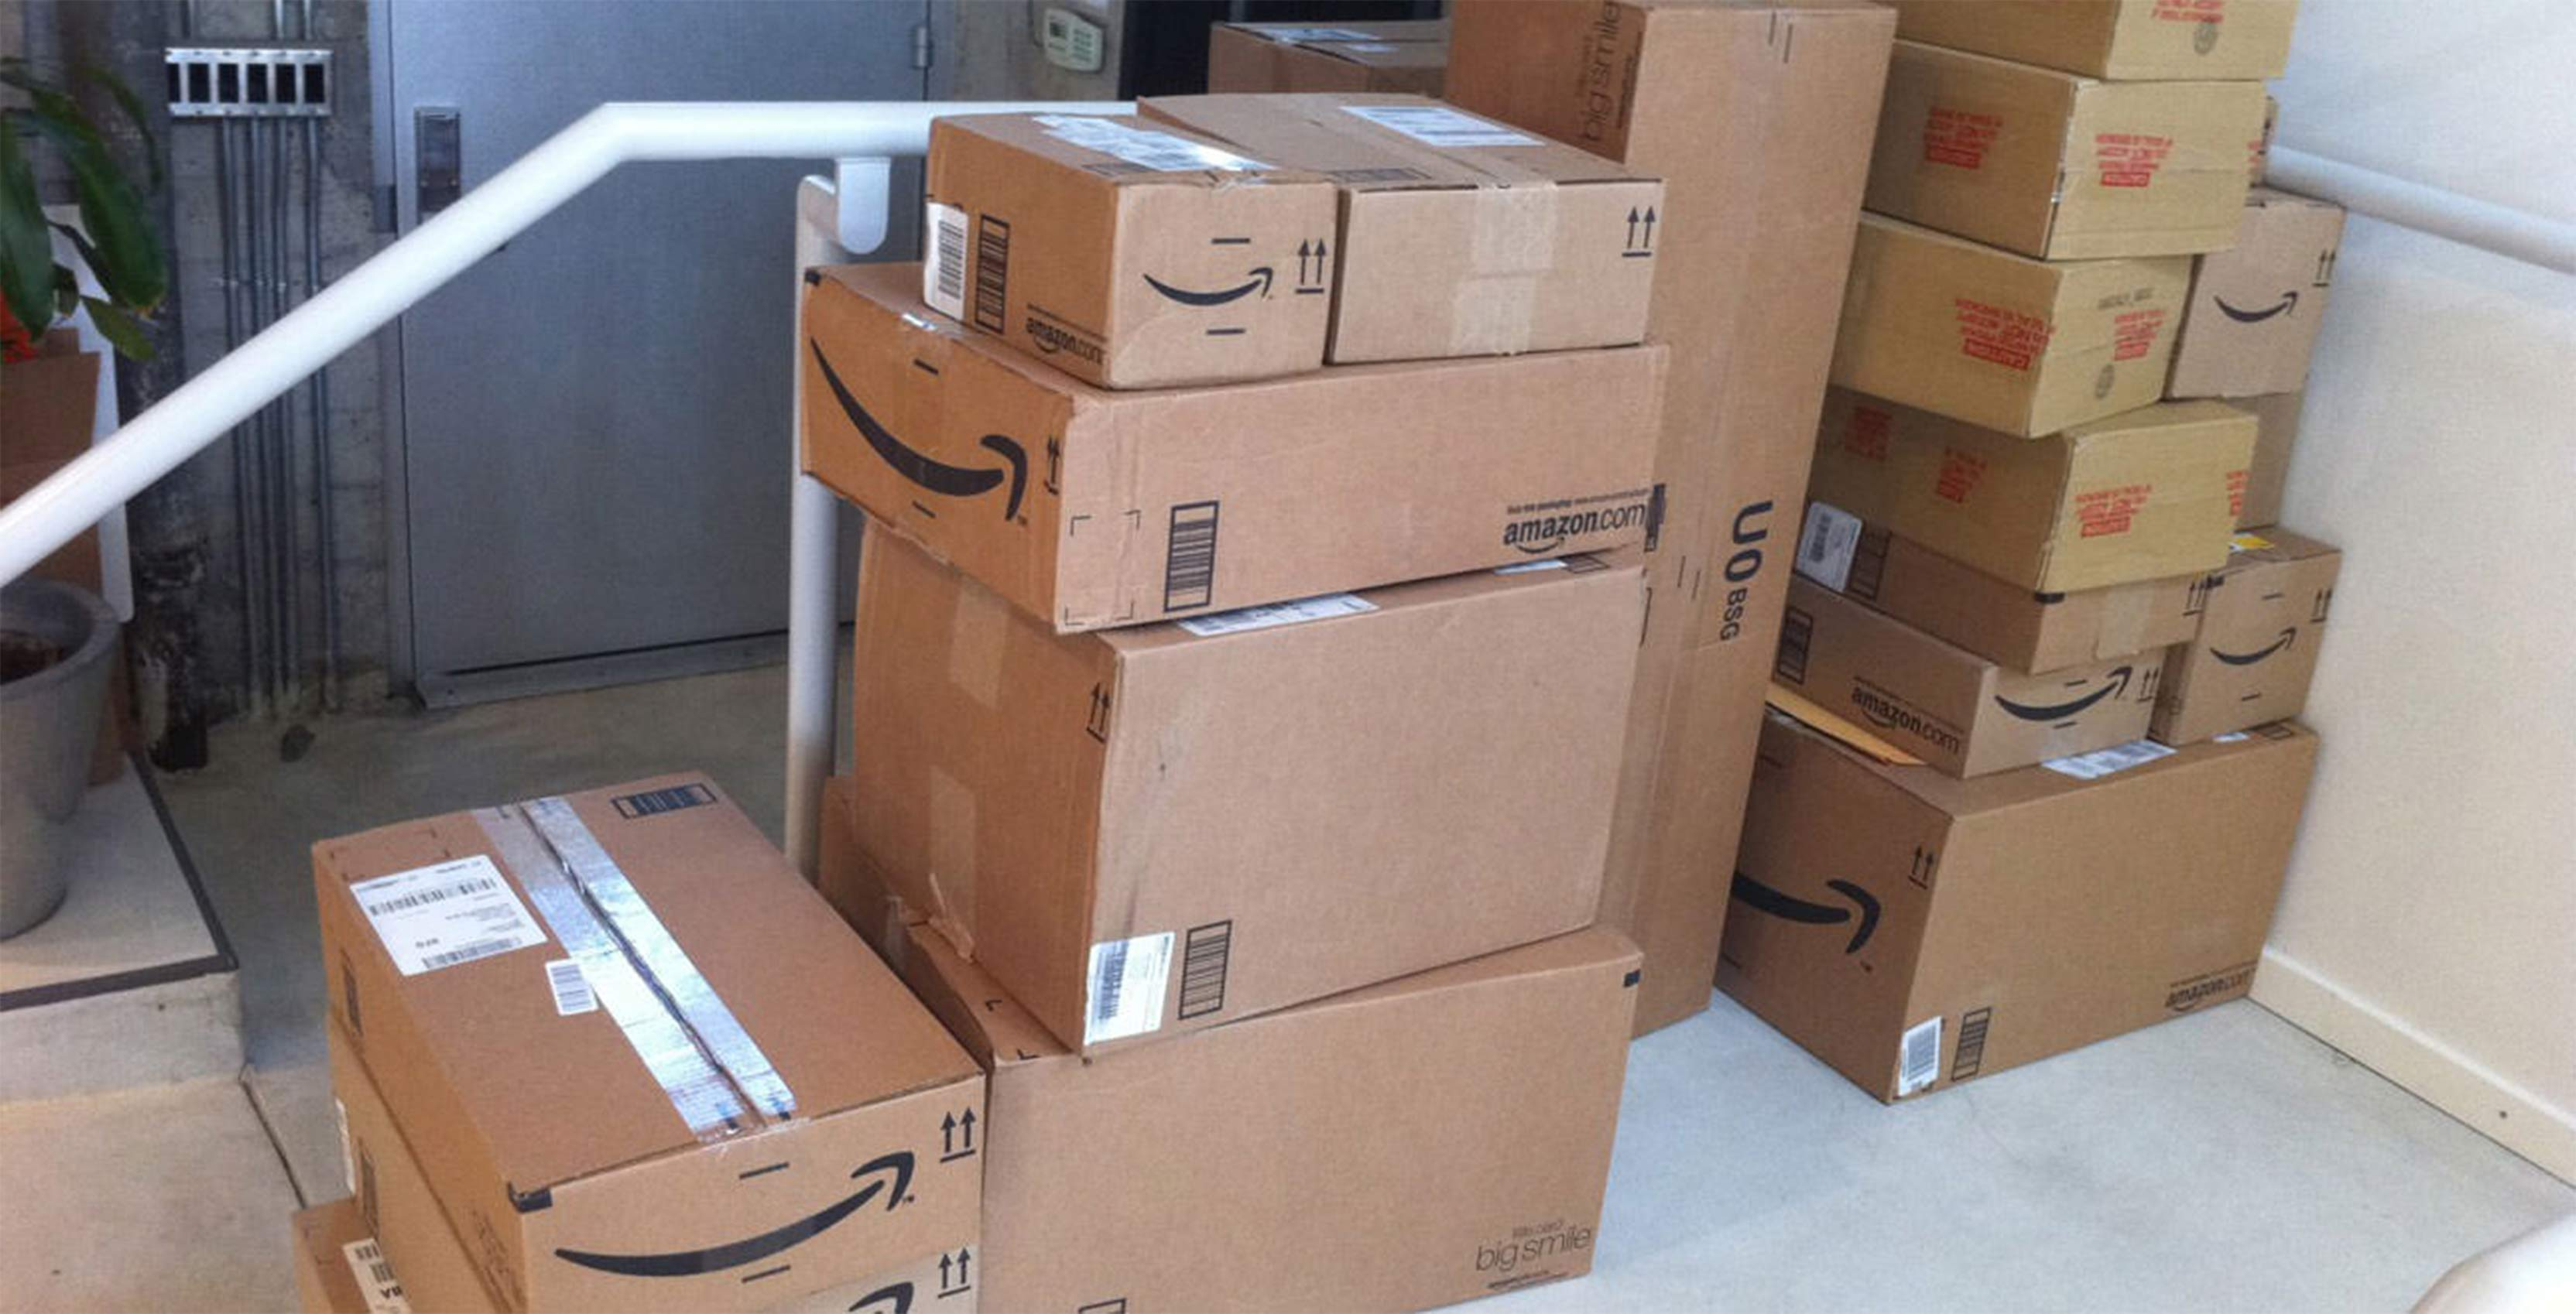 Amazon releases shipment records, ships over 5 billion items worldwide